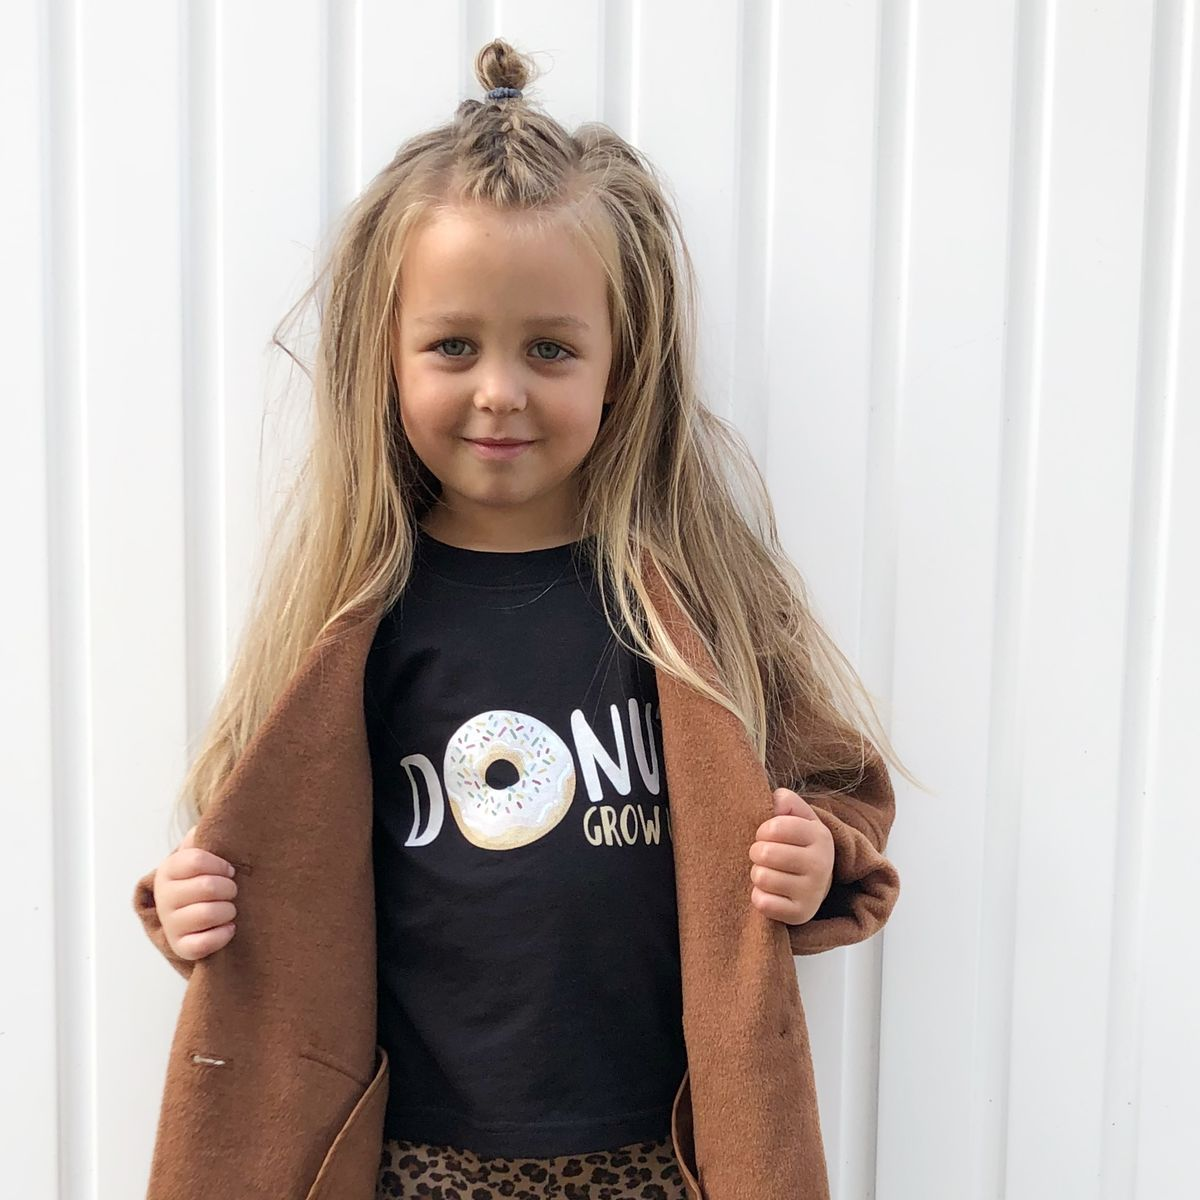 'White' Donut Grow Up Black Kids T-Shirt (various sizes) - product images  of